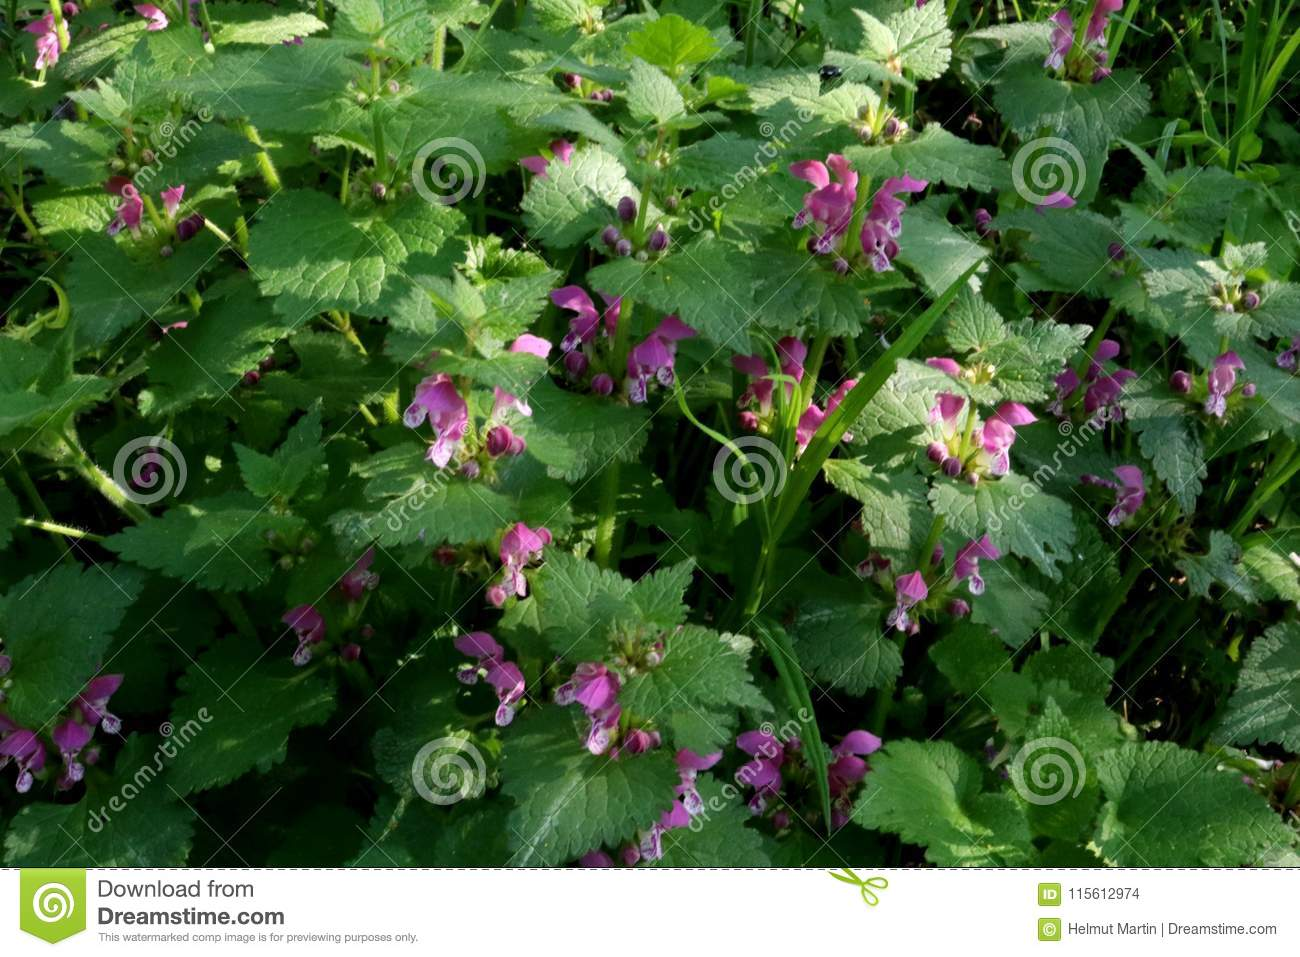 Dead Nettles with pink flowers